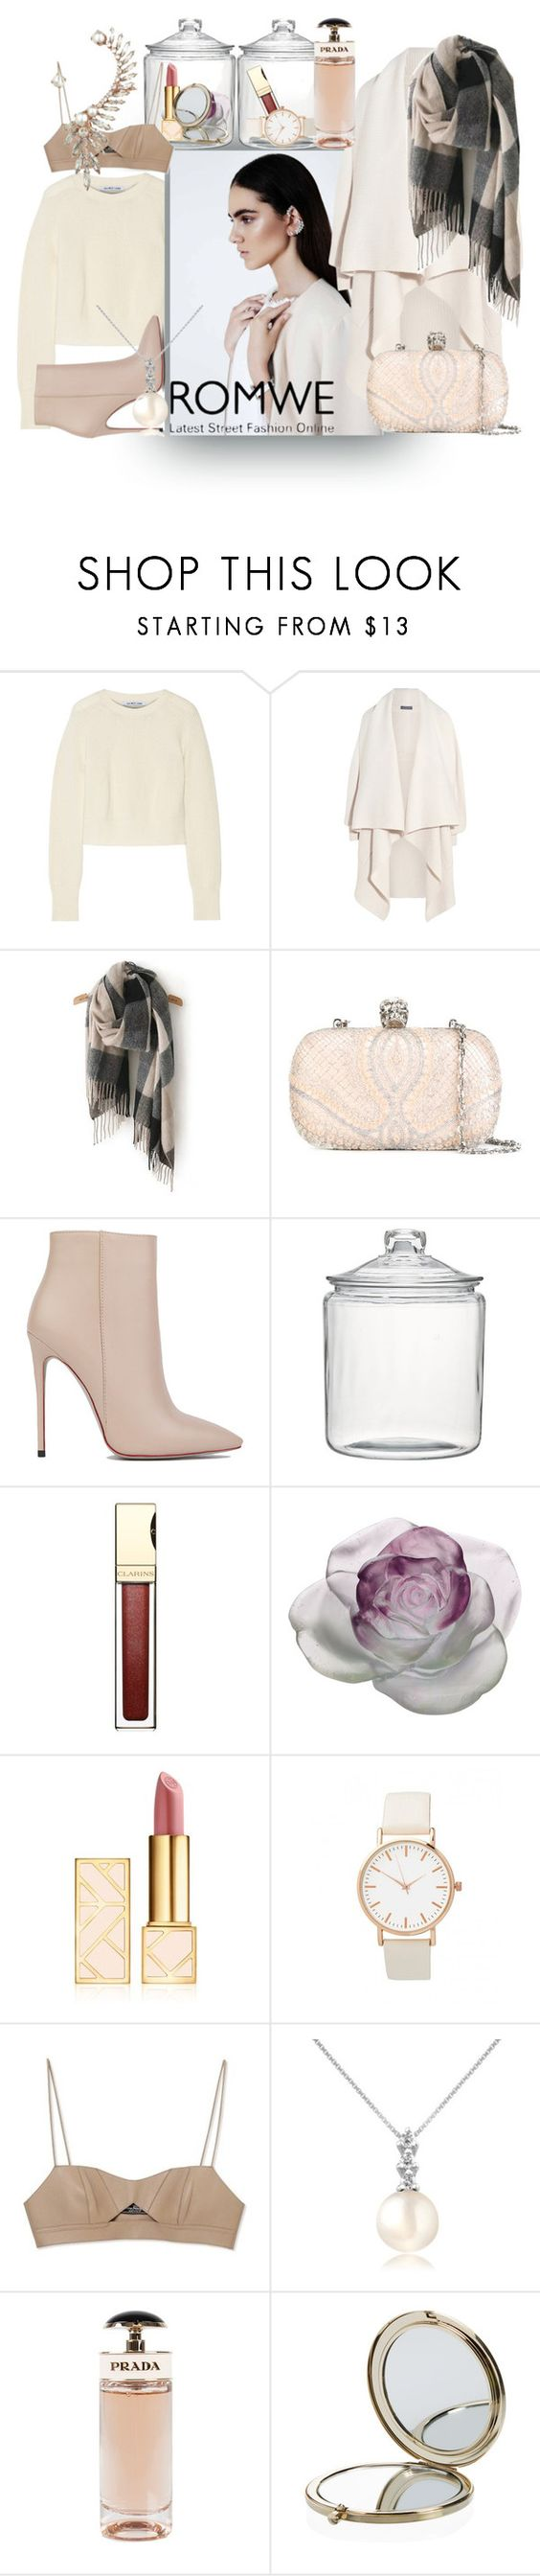 """Grey Classical Scarve...all nude!"" by chrisfili on Polyvore featuring Helmut Lang, Alexander McQueen, Akira Black Label, Crate and Barrel, Clarins, Daum, Tory Burch, Salvatore Ferragamo, Forzieri and Prada"